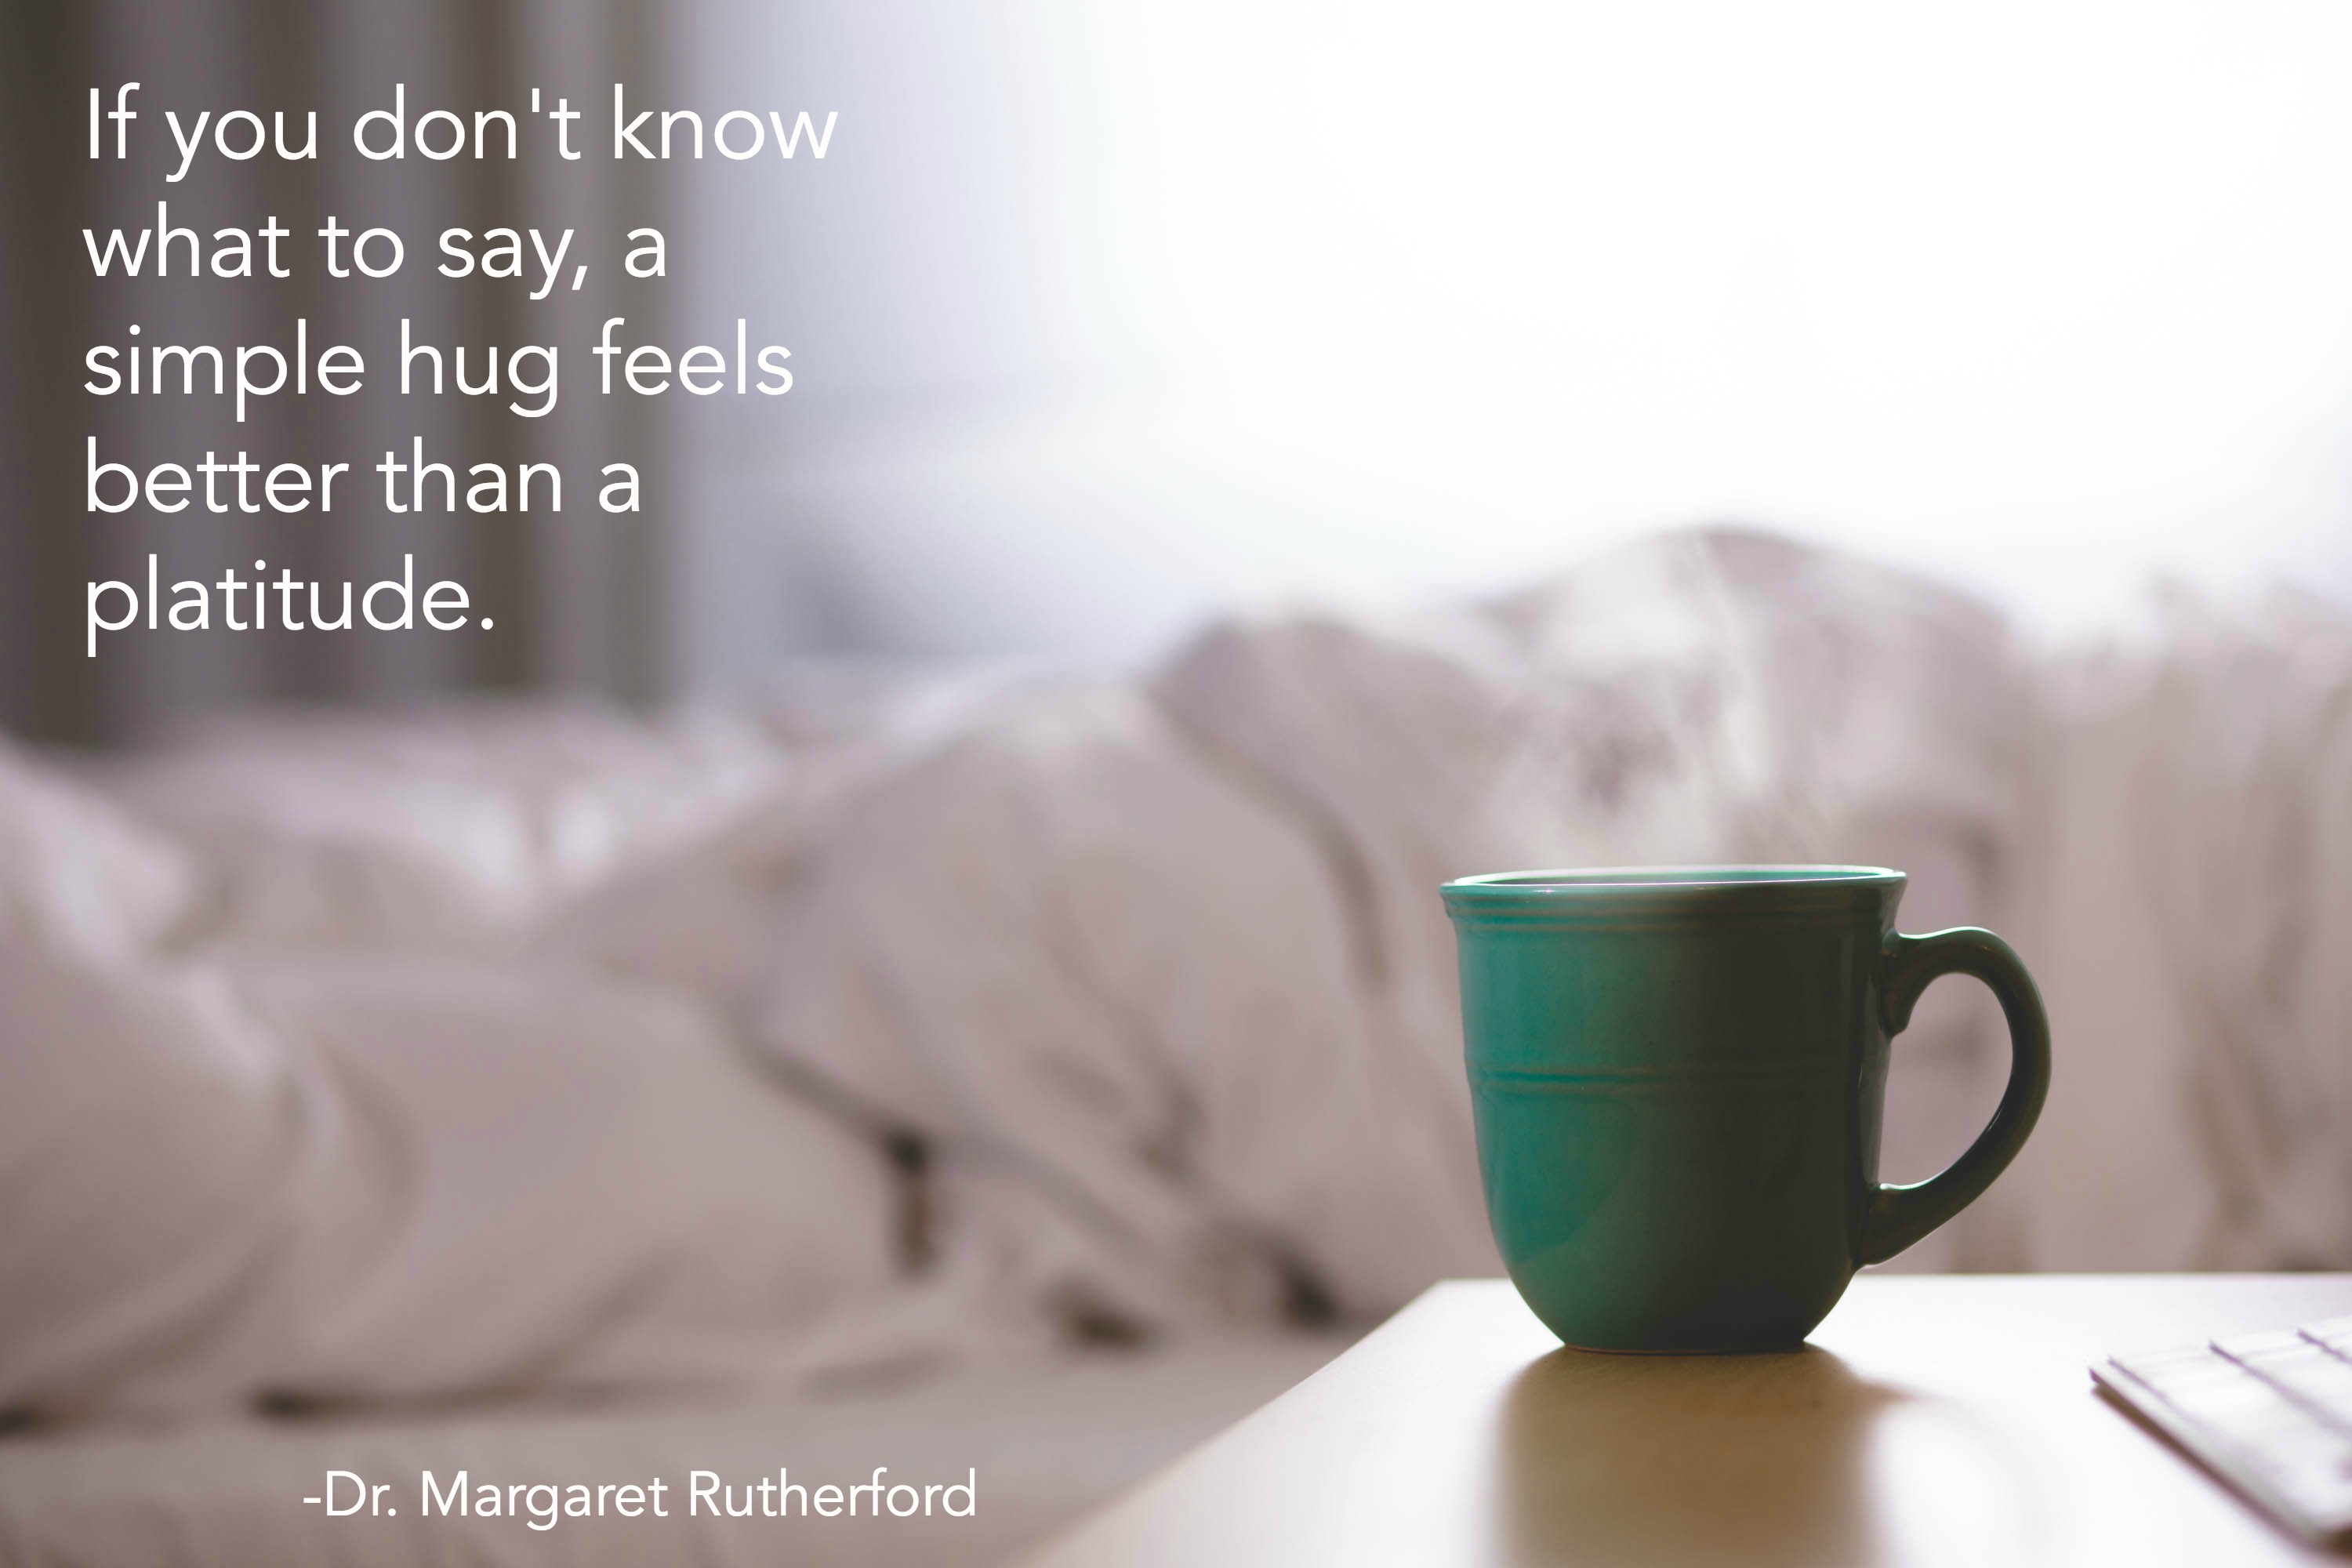 If you don't know what to say, a simple hug feels better than a platitude.